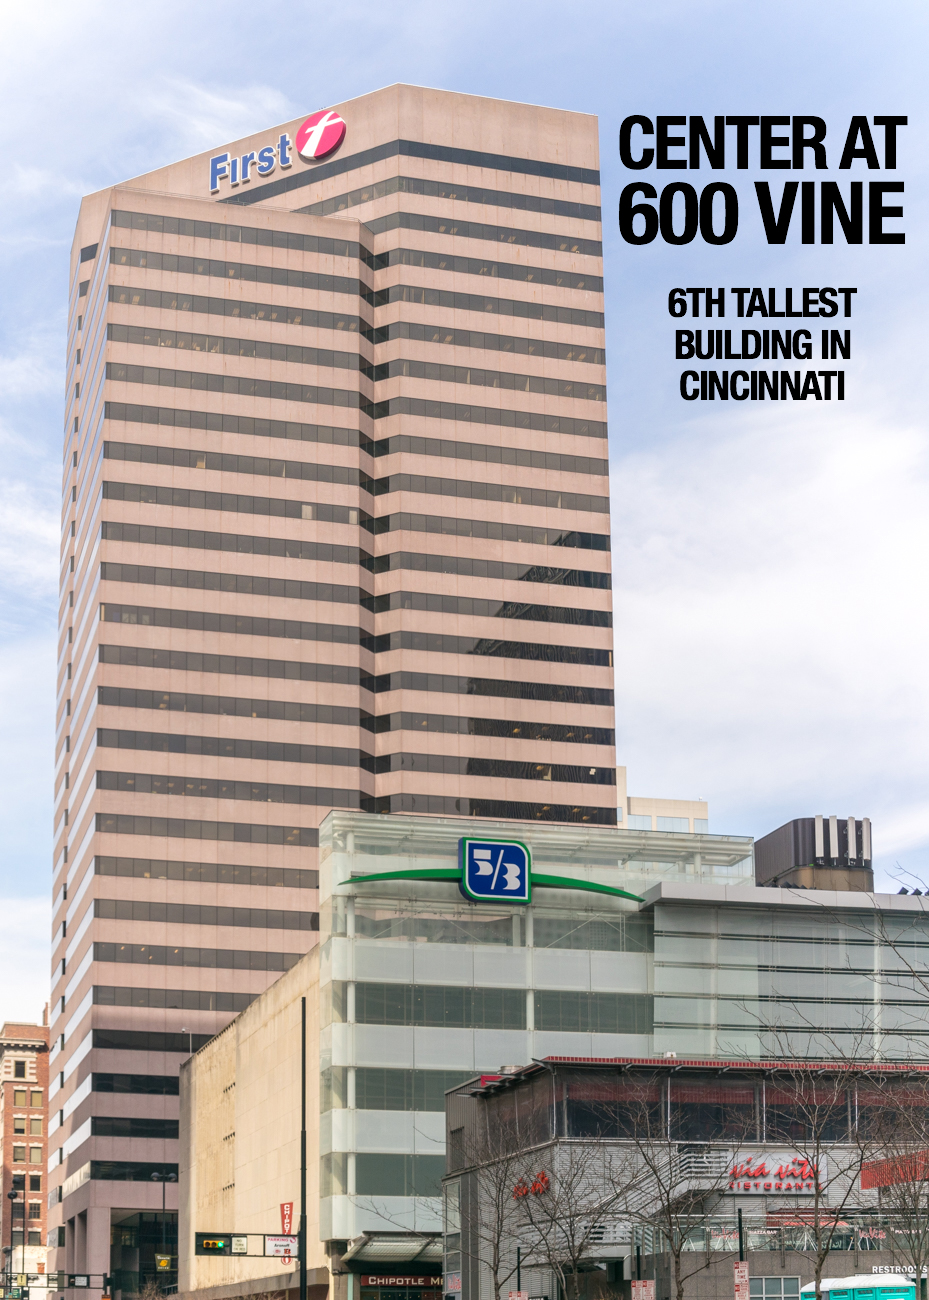 Center at 600 Vine: 418 feet tall, 30 floors, built in 1984 / Image: Phil Armstrong, Cincinnati Refined // Published: 2.21.17